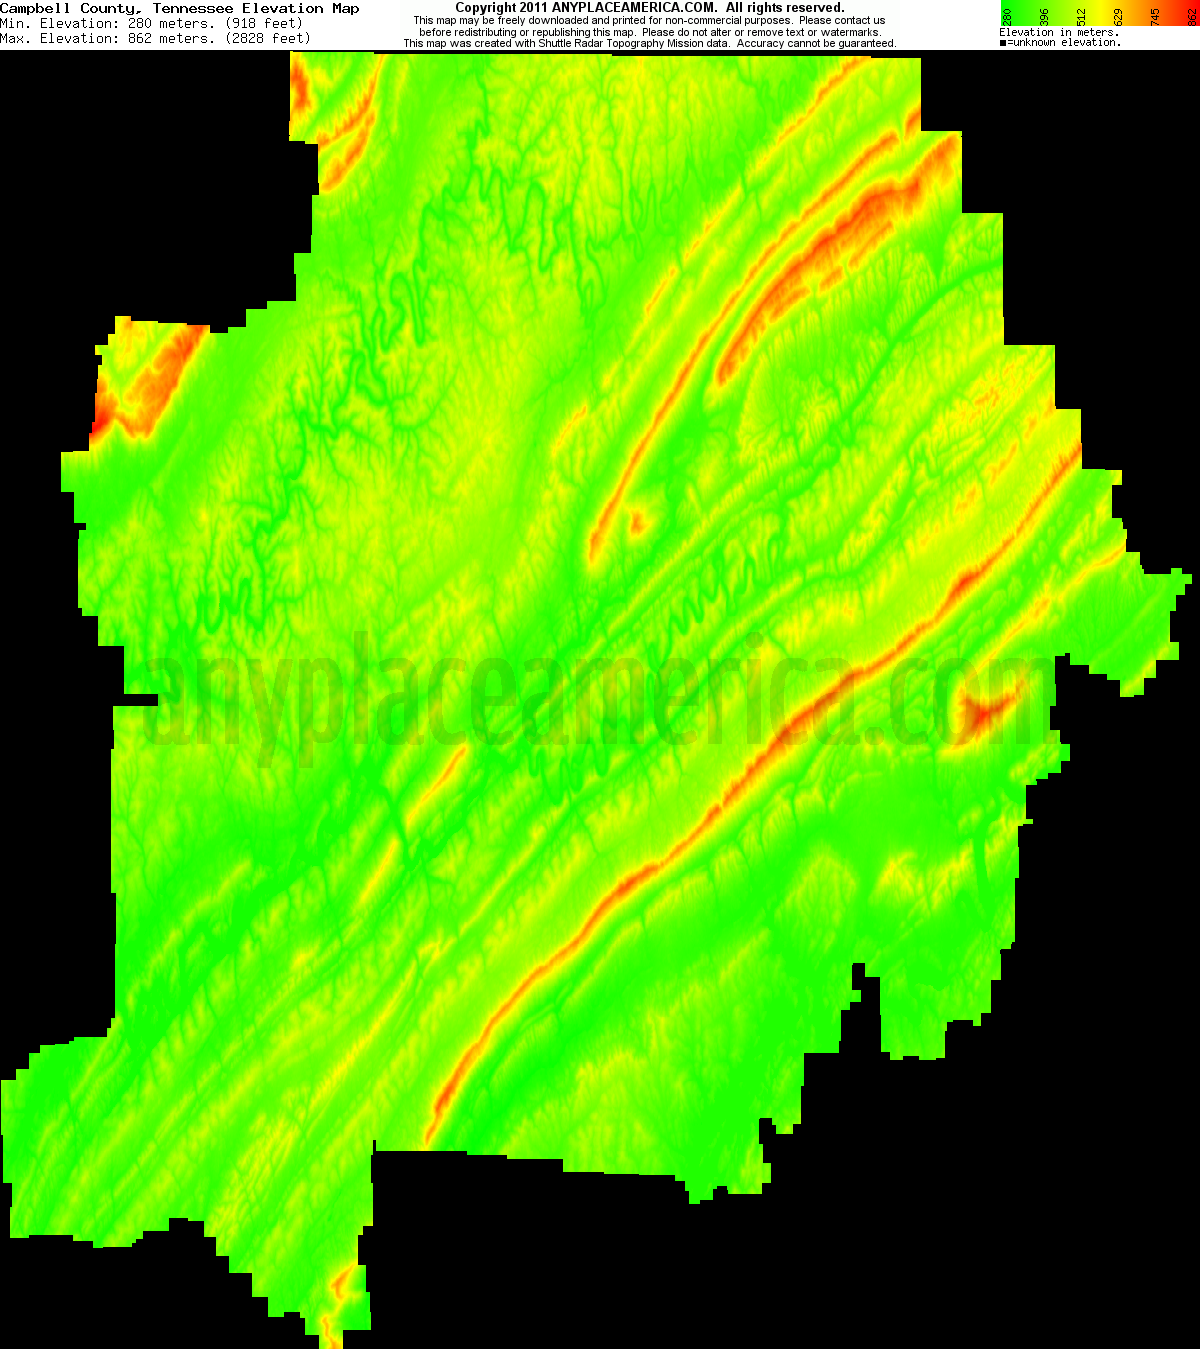 Tn Elevation Map.Free Campbell County Tennessee Topo Maps Elevations